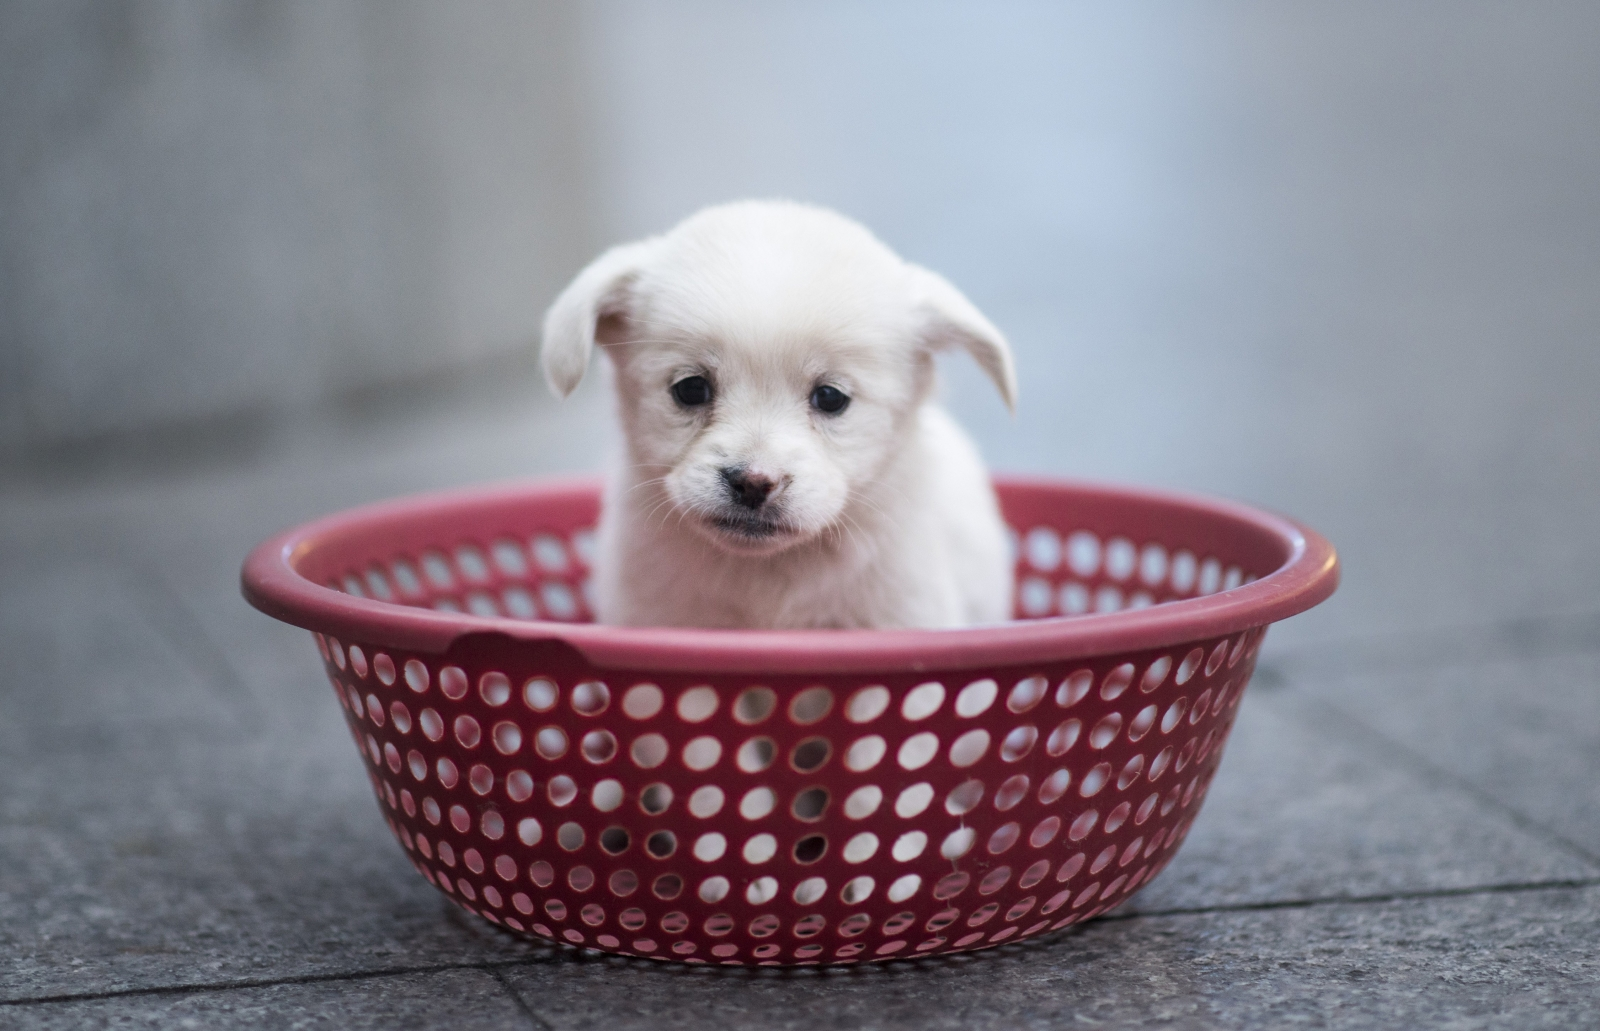 Pet shops banned from selling puppies across England